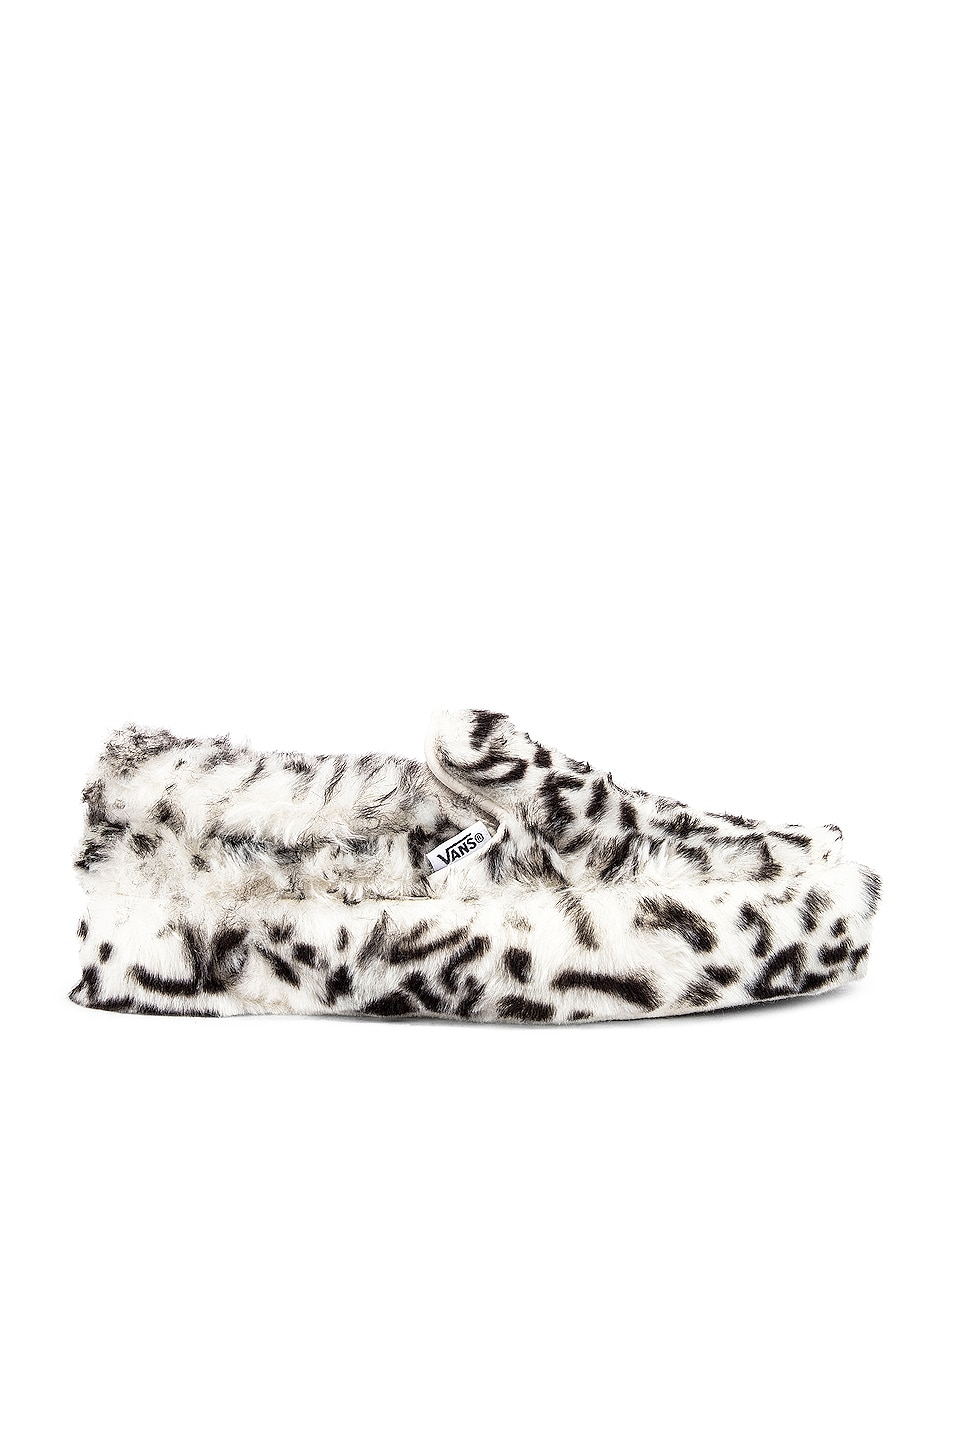 Image 2 of Vans x Sandy Liang Classic Slip-On Platform in Paws & True White